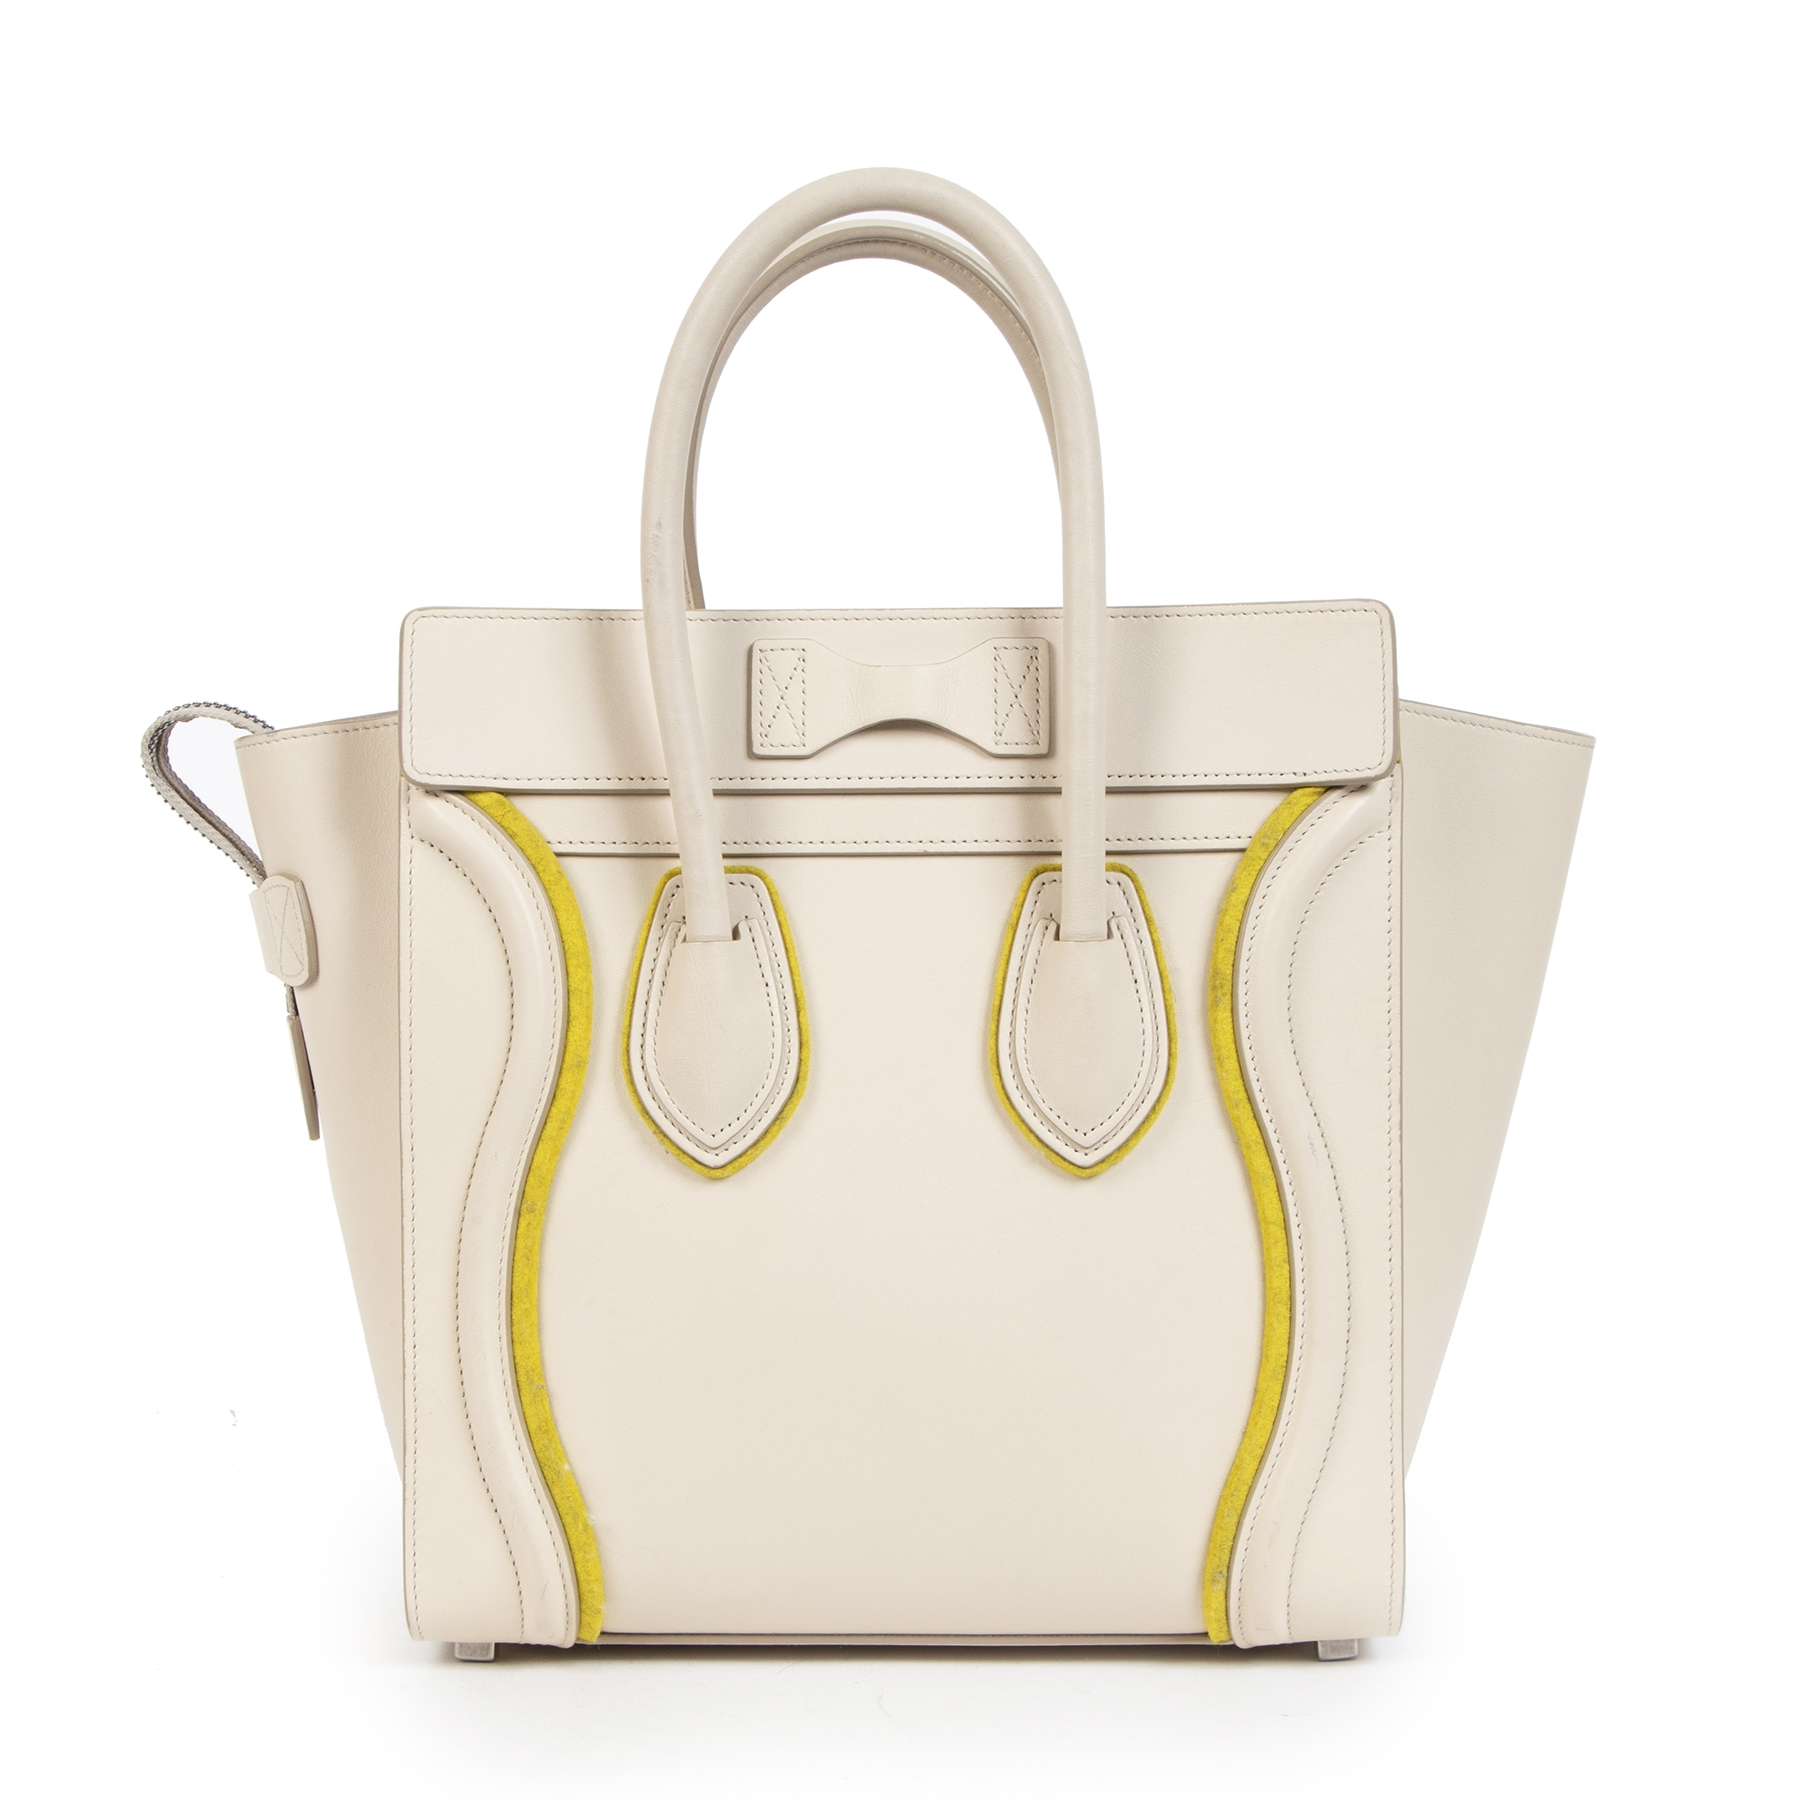 Authentic secondhand Céline Felt Beige and Yellow Leather Luggage Bag designer bags fashion luxury vintage webshop safe secure online shopping worldwide shipping